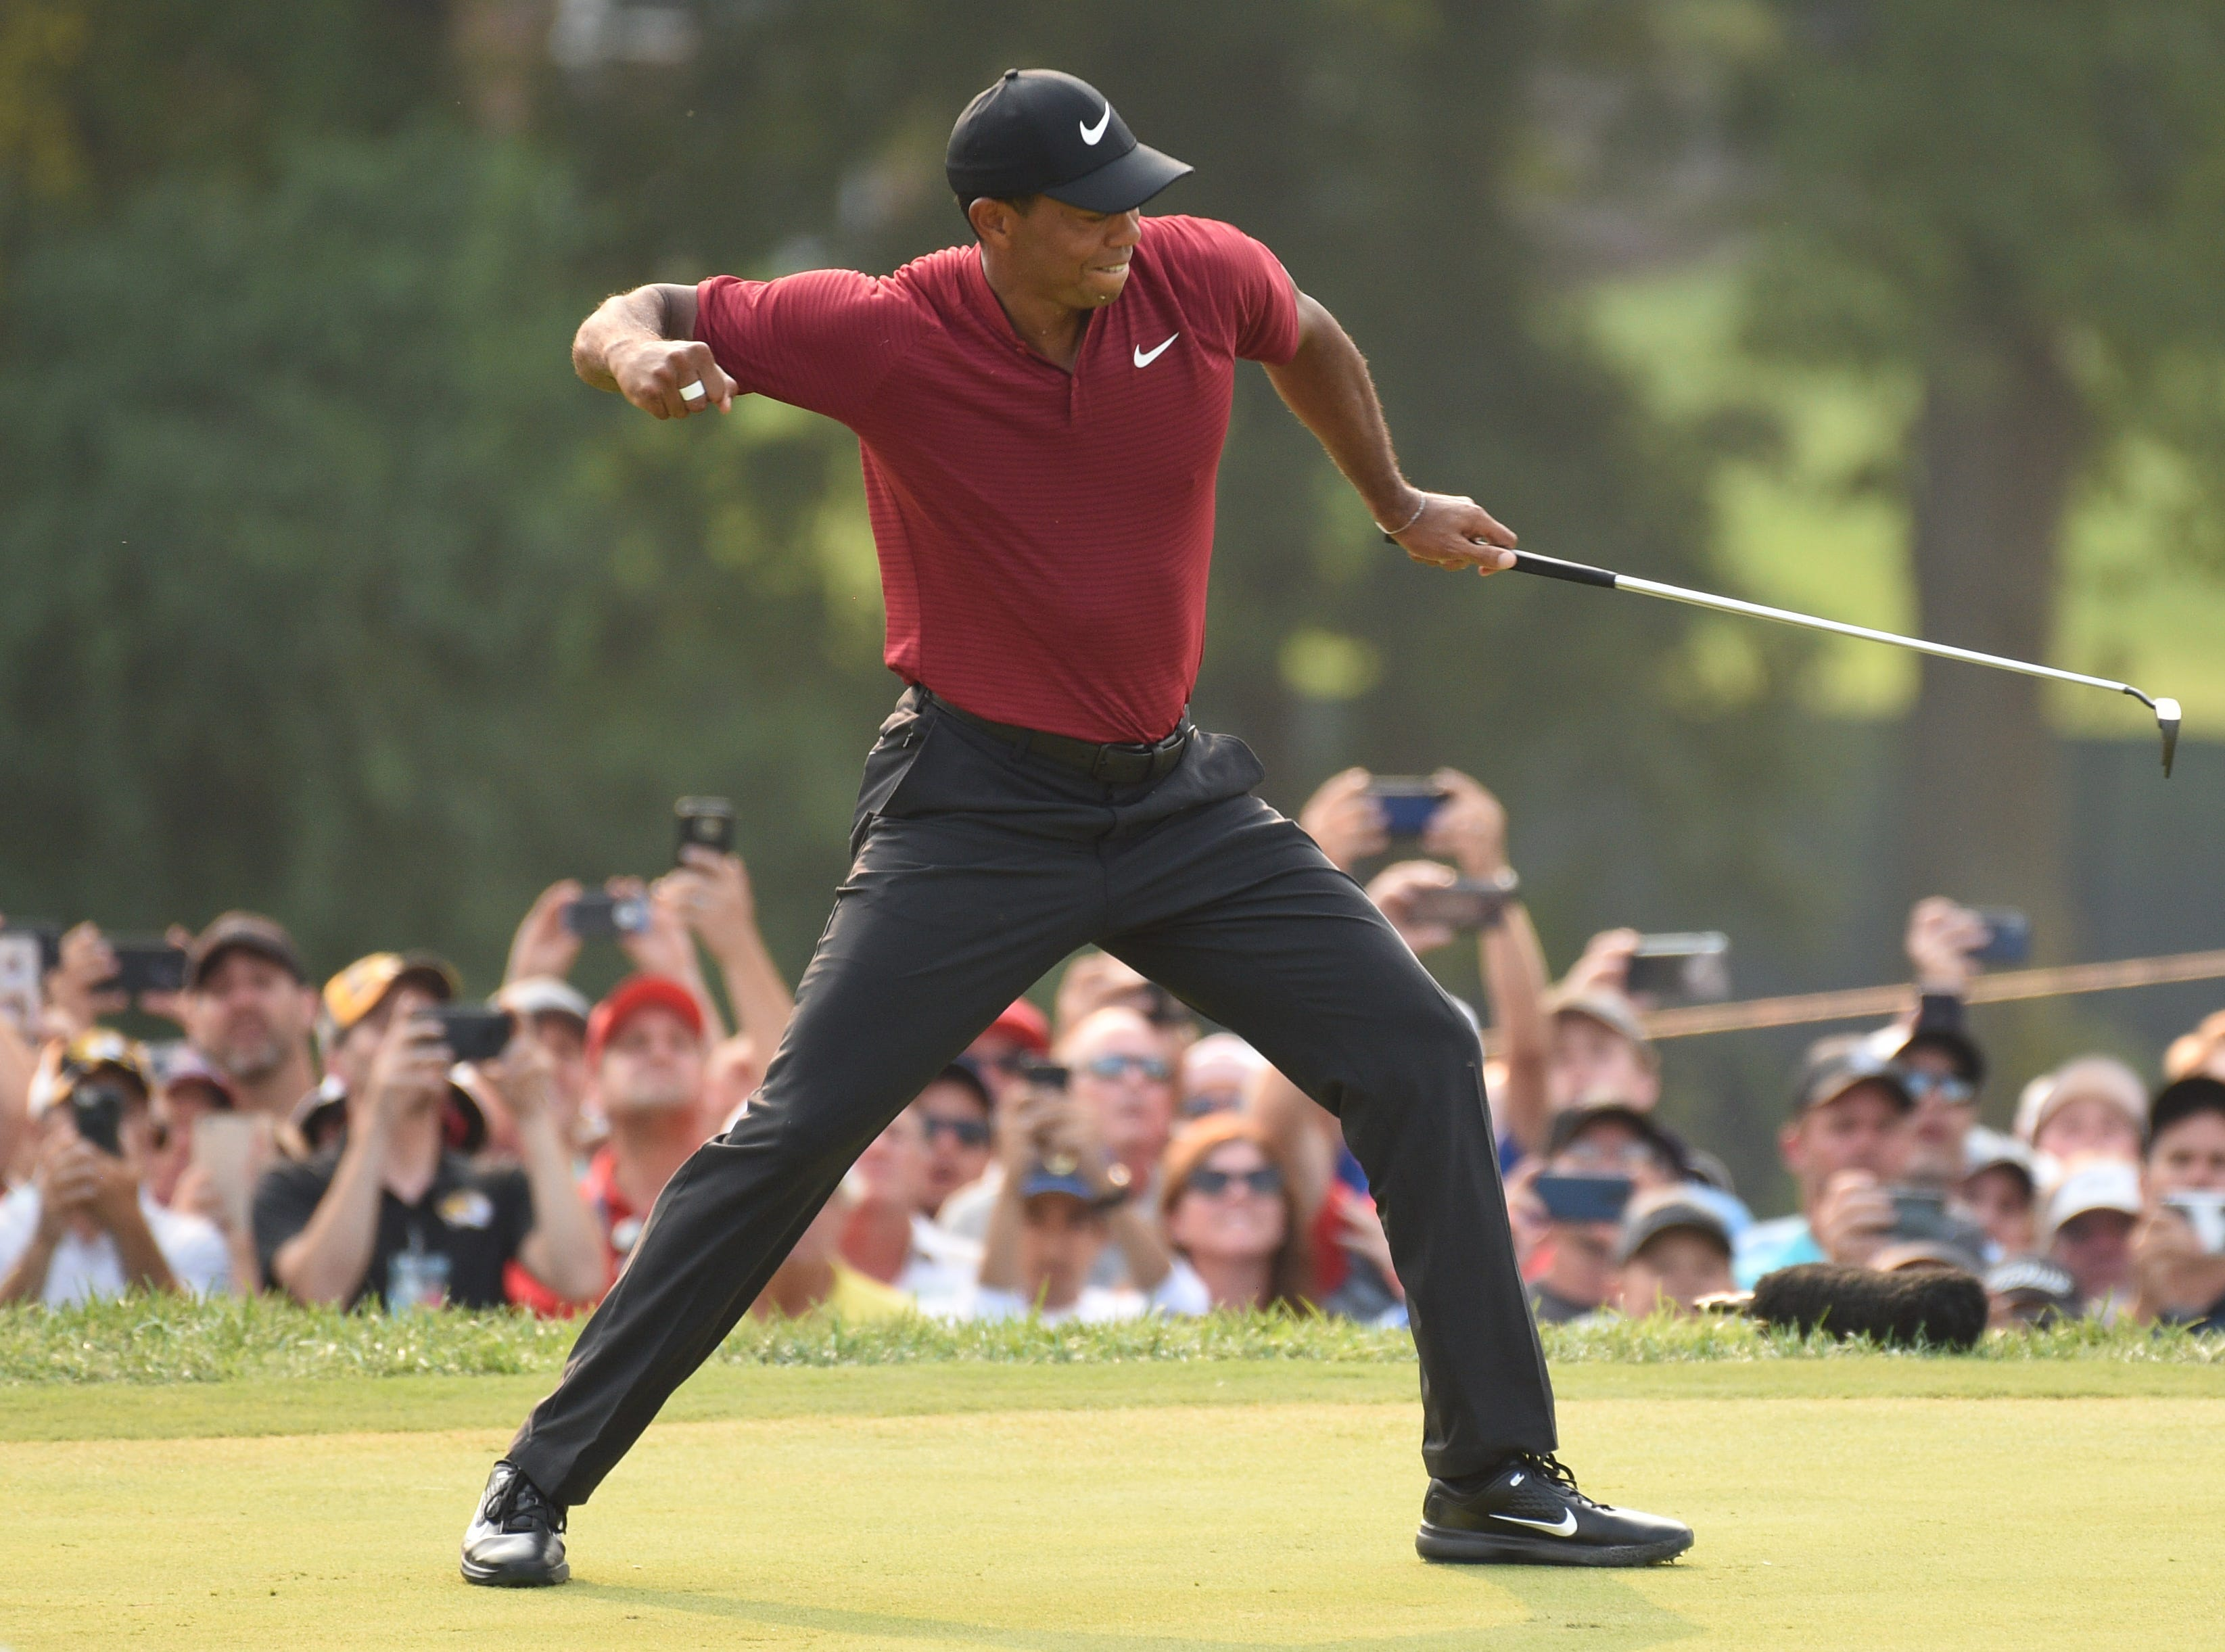 Aug. 12: Tiger Woods celebrates after making a birdie putt on the 18th green during the final round of the PGA Championship at Bellerive Country Club.